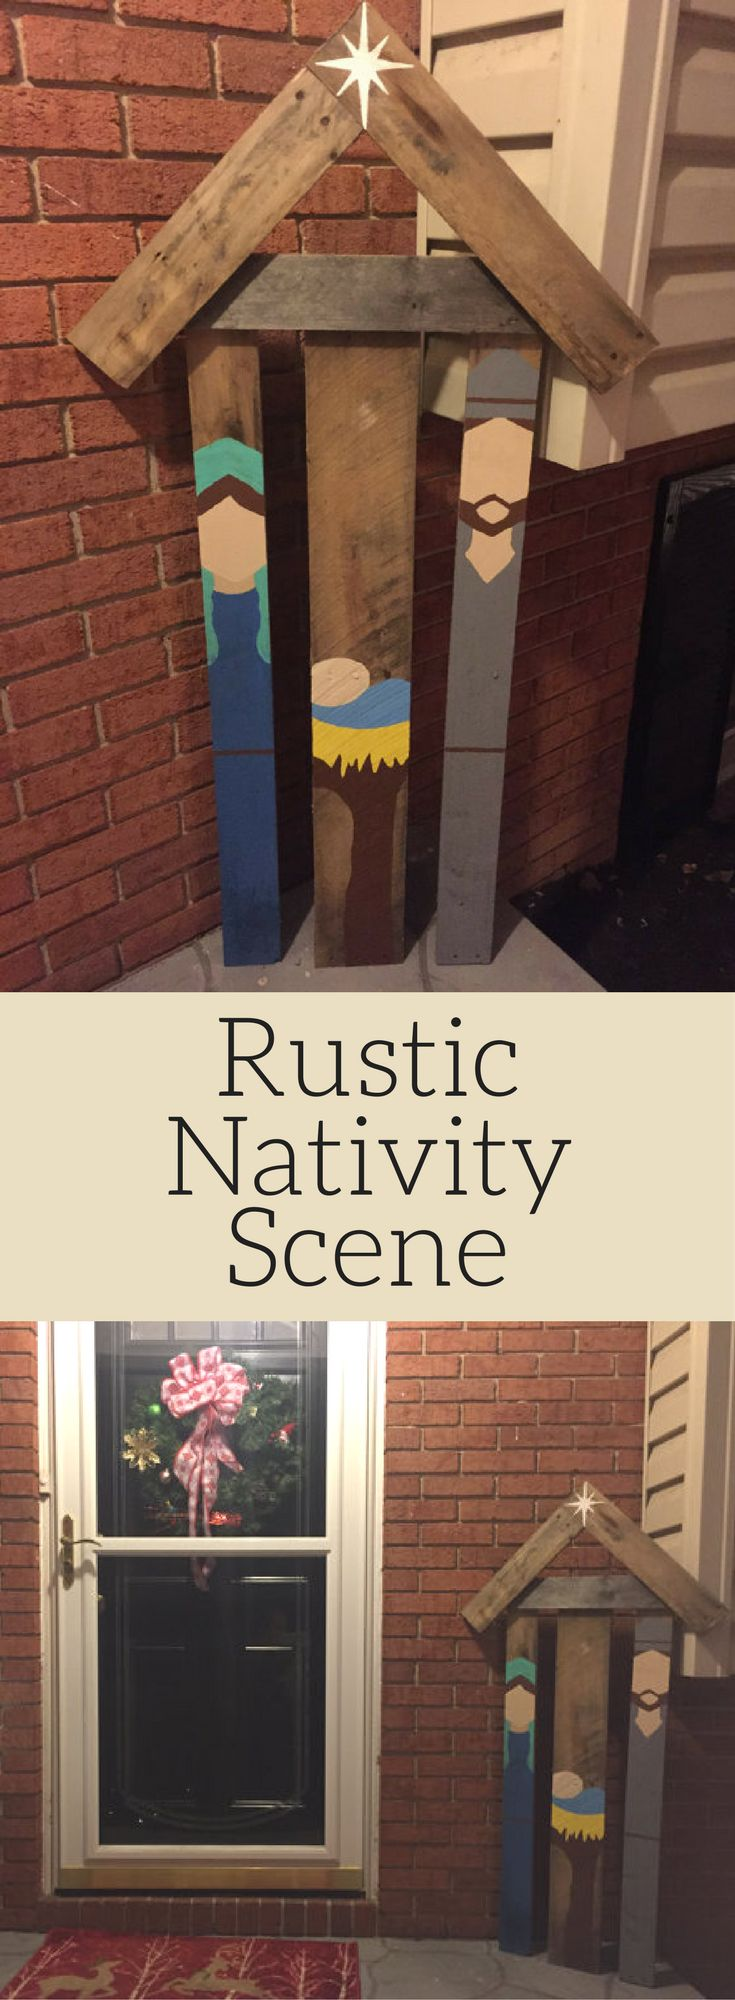 Rustic Nativity Scene - love the simplicity! Reclaimed pallet wood nativity scene, Rustic Christmas, Jesus birthday, Christmas decor, Christmas outdoor decoration, Christmas porch decor, Rustic decor #ad